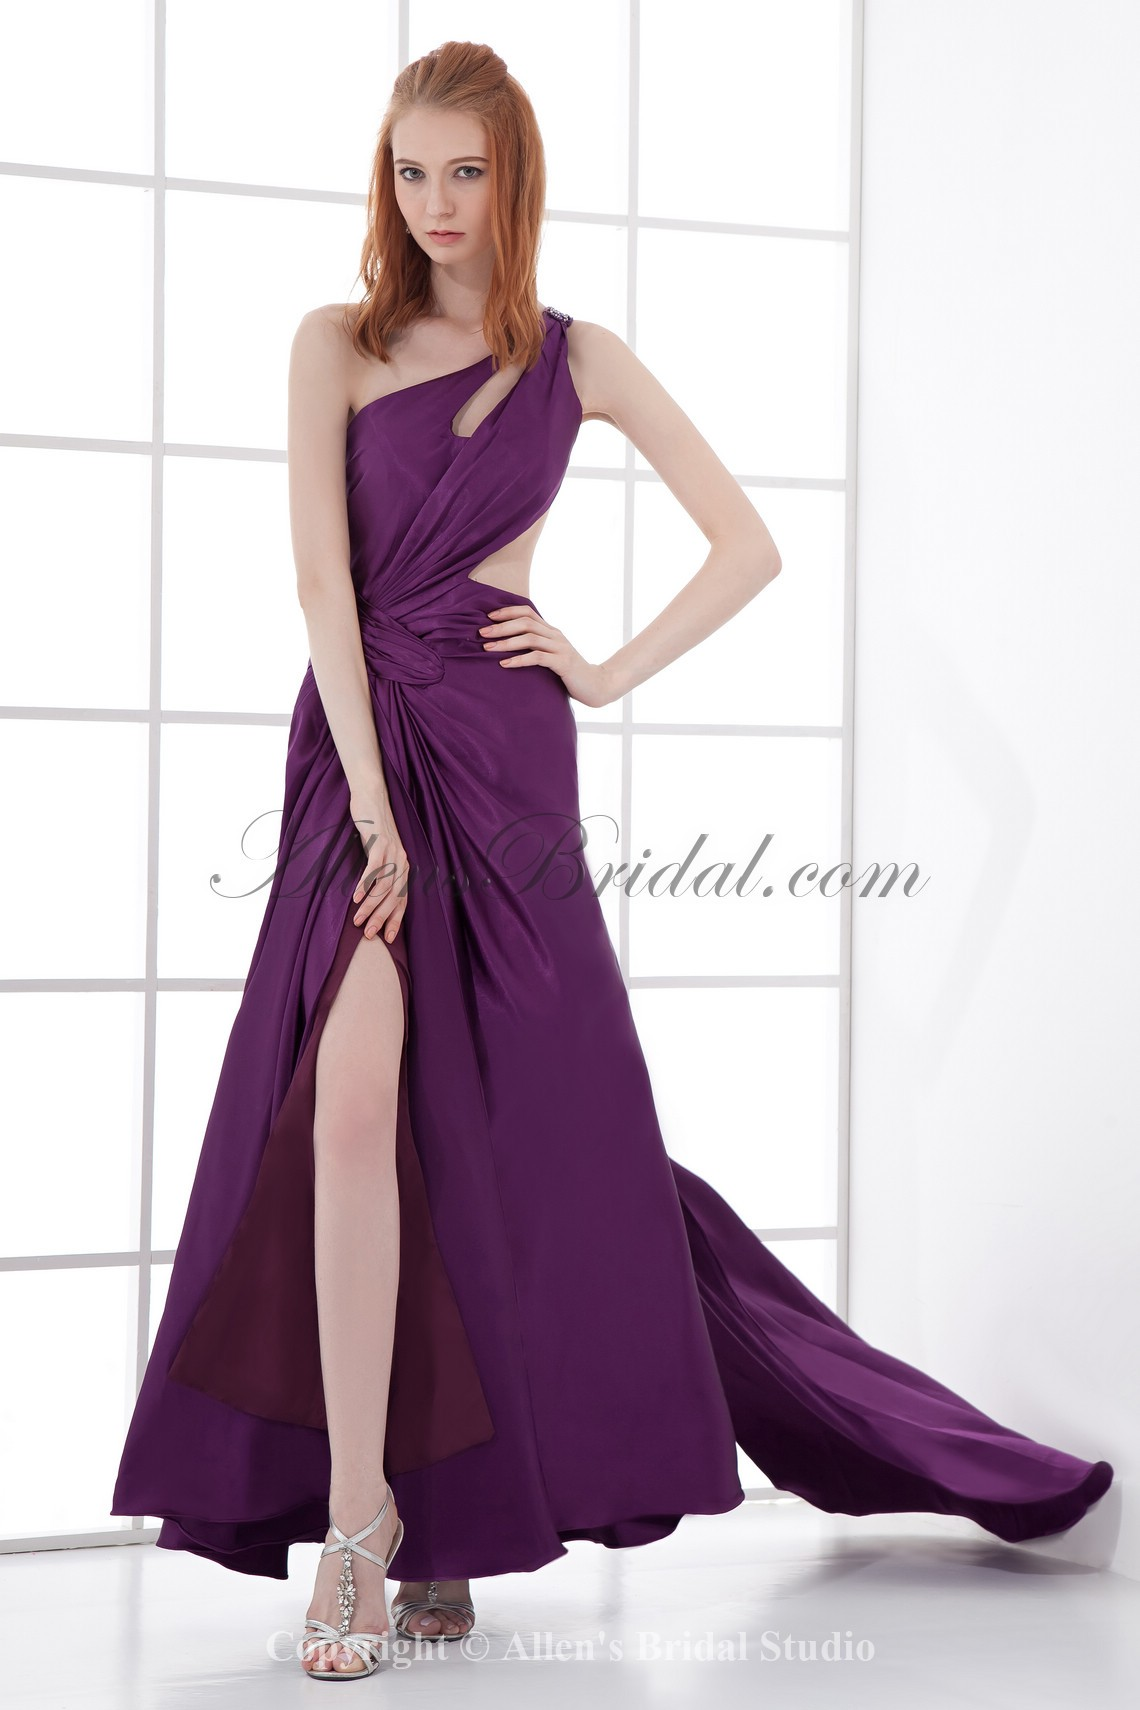 /66-521/satin-one-shoulder-ankle-length-a-line-prom-dress.jpg